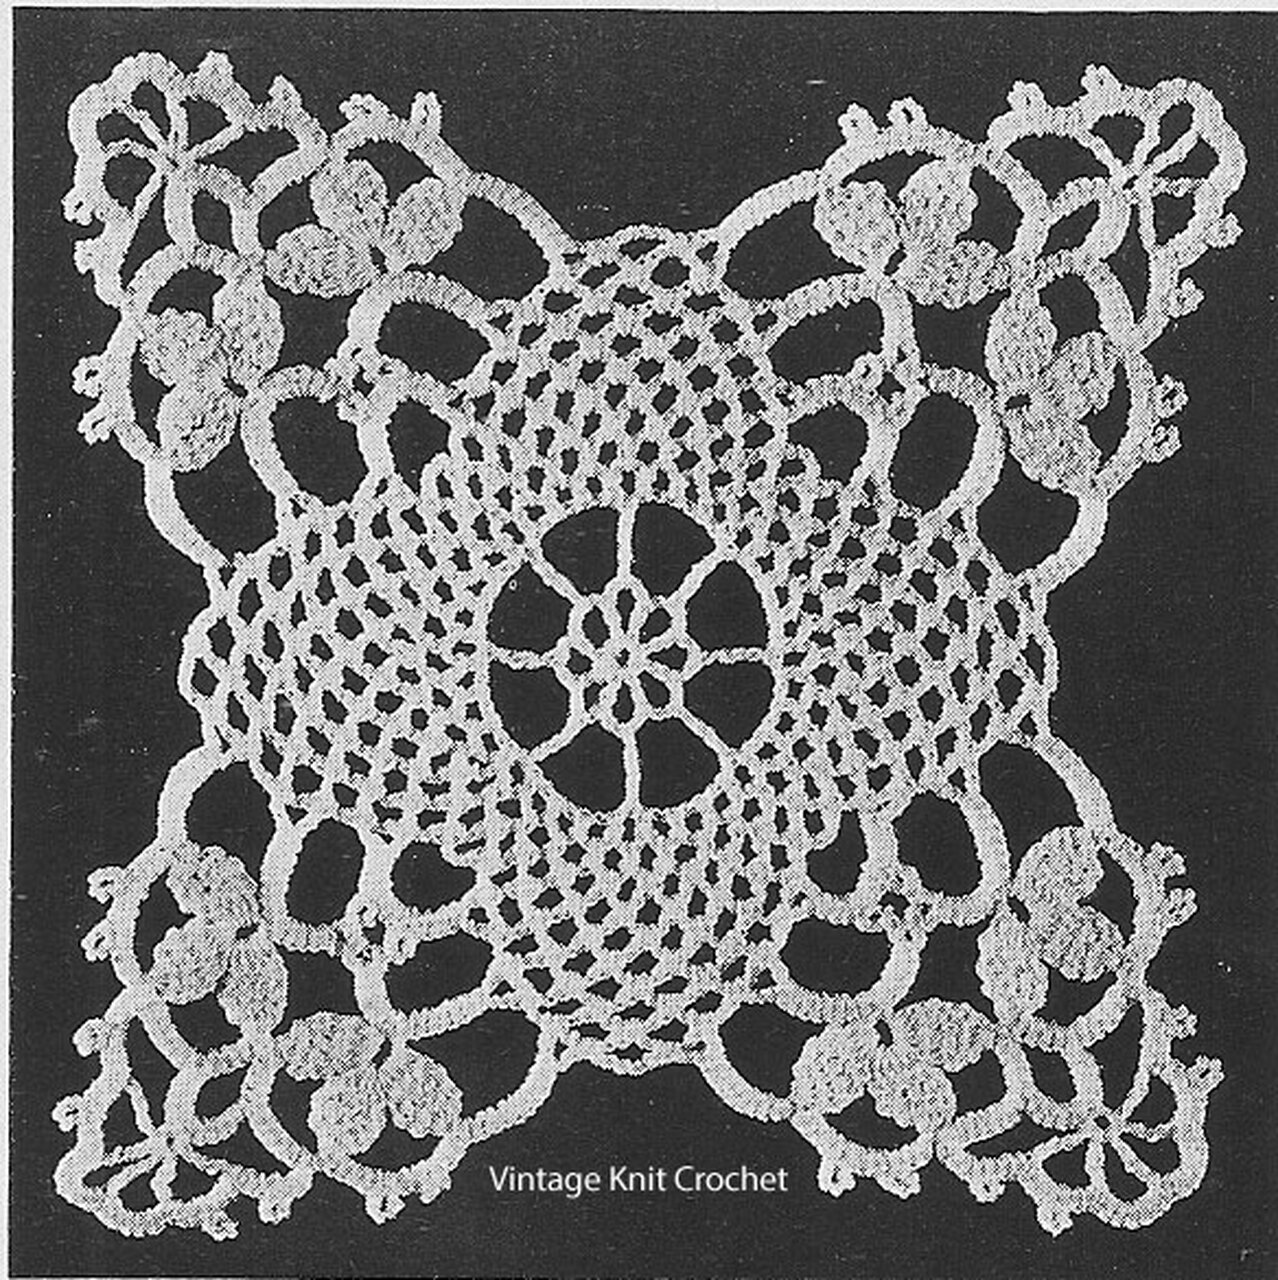 Crocheted Lace Bedspread Square No 621, Vintage 1939